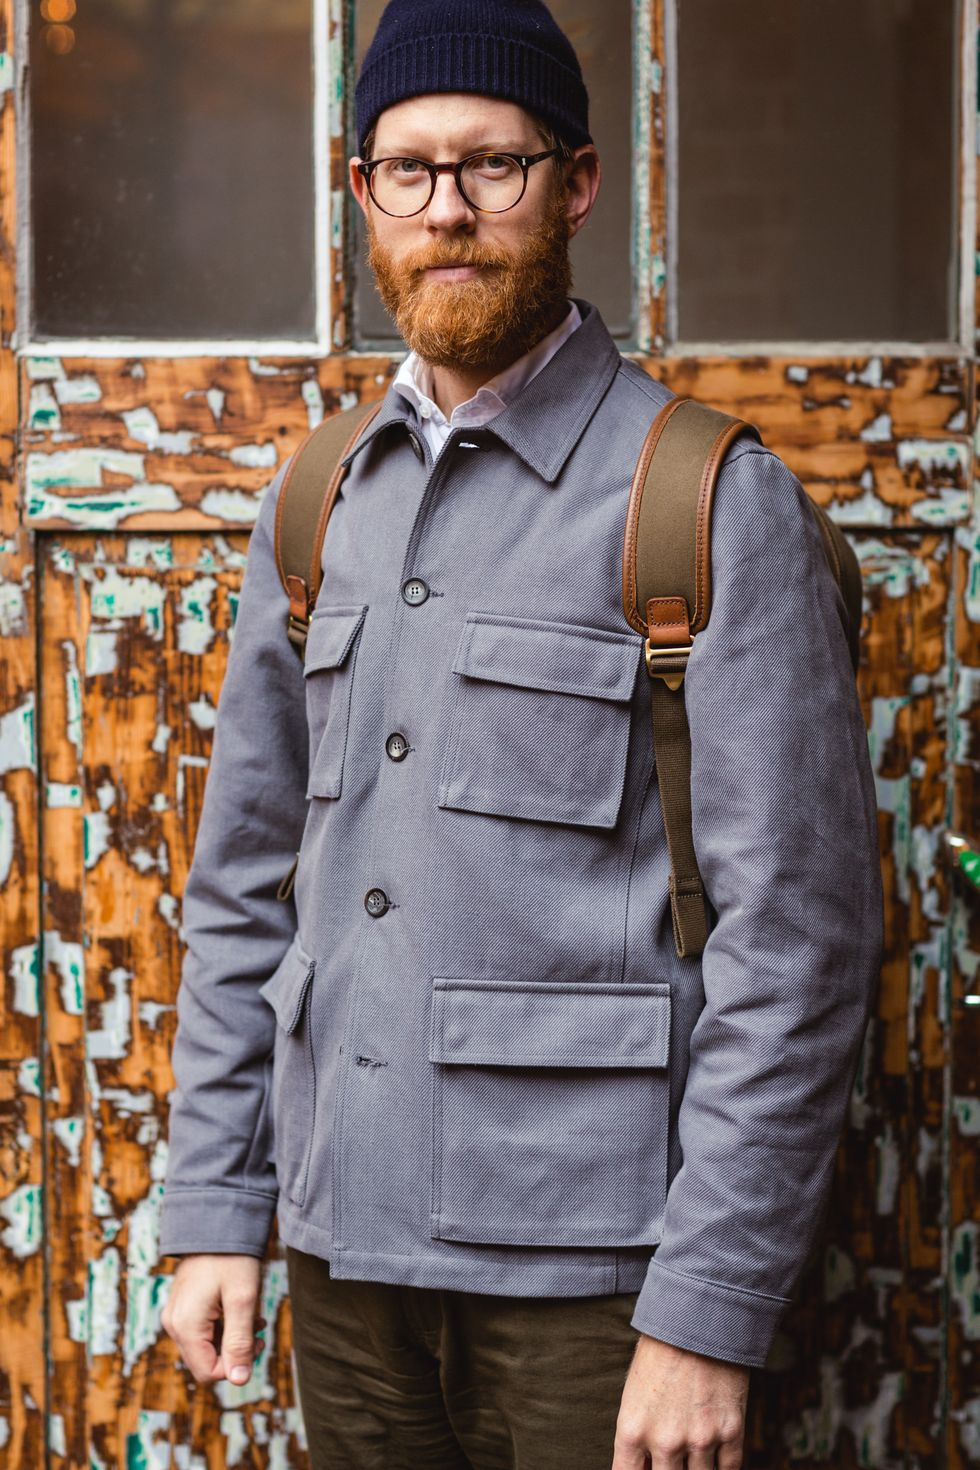 Reflektion - Trender inom workwear